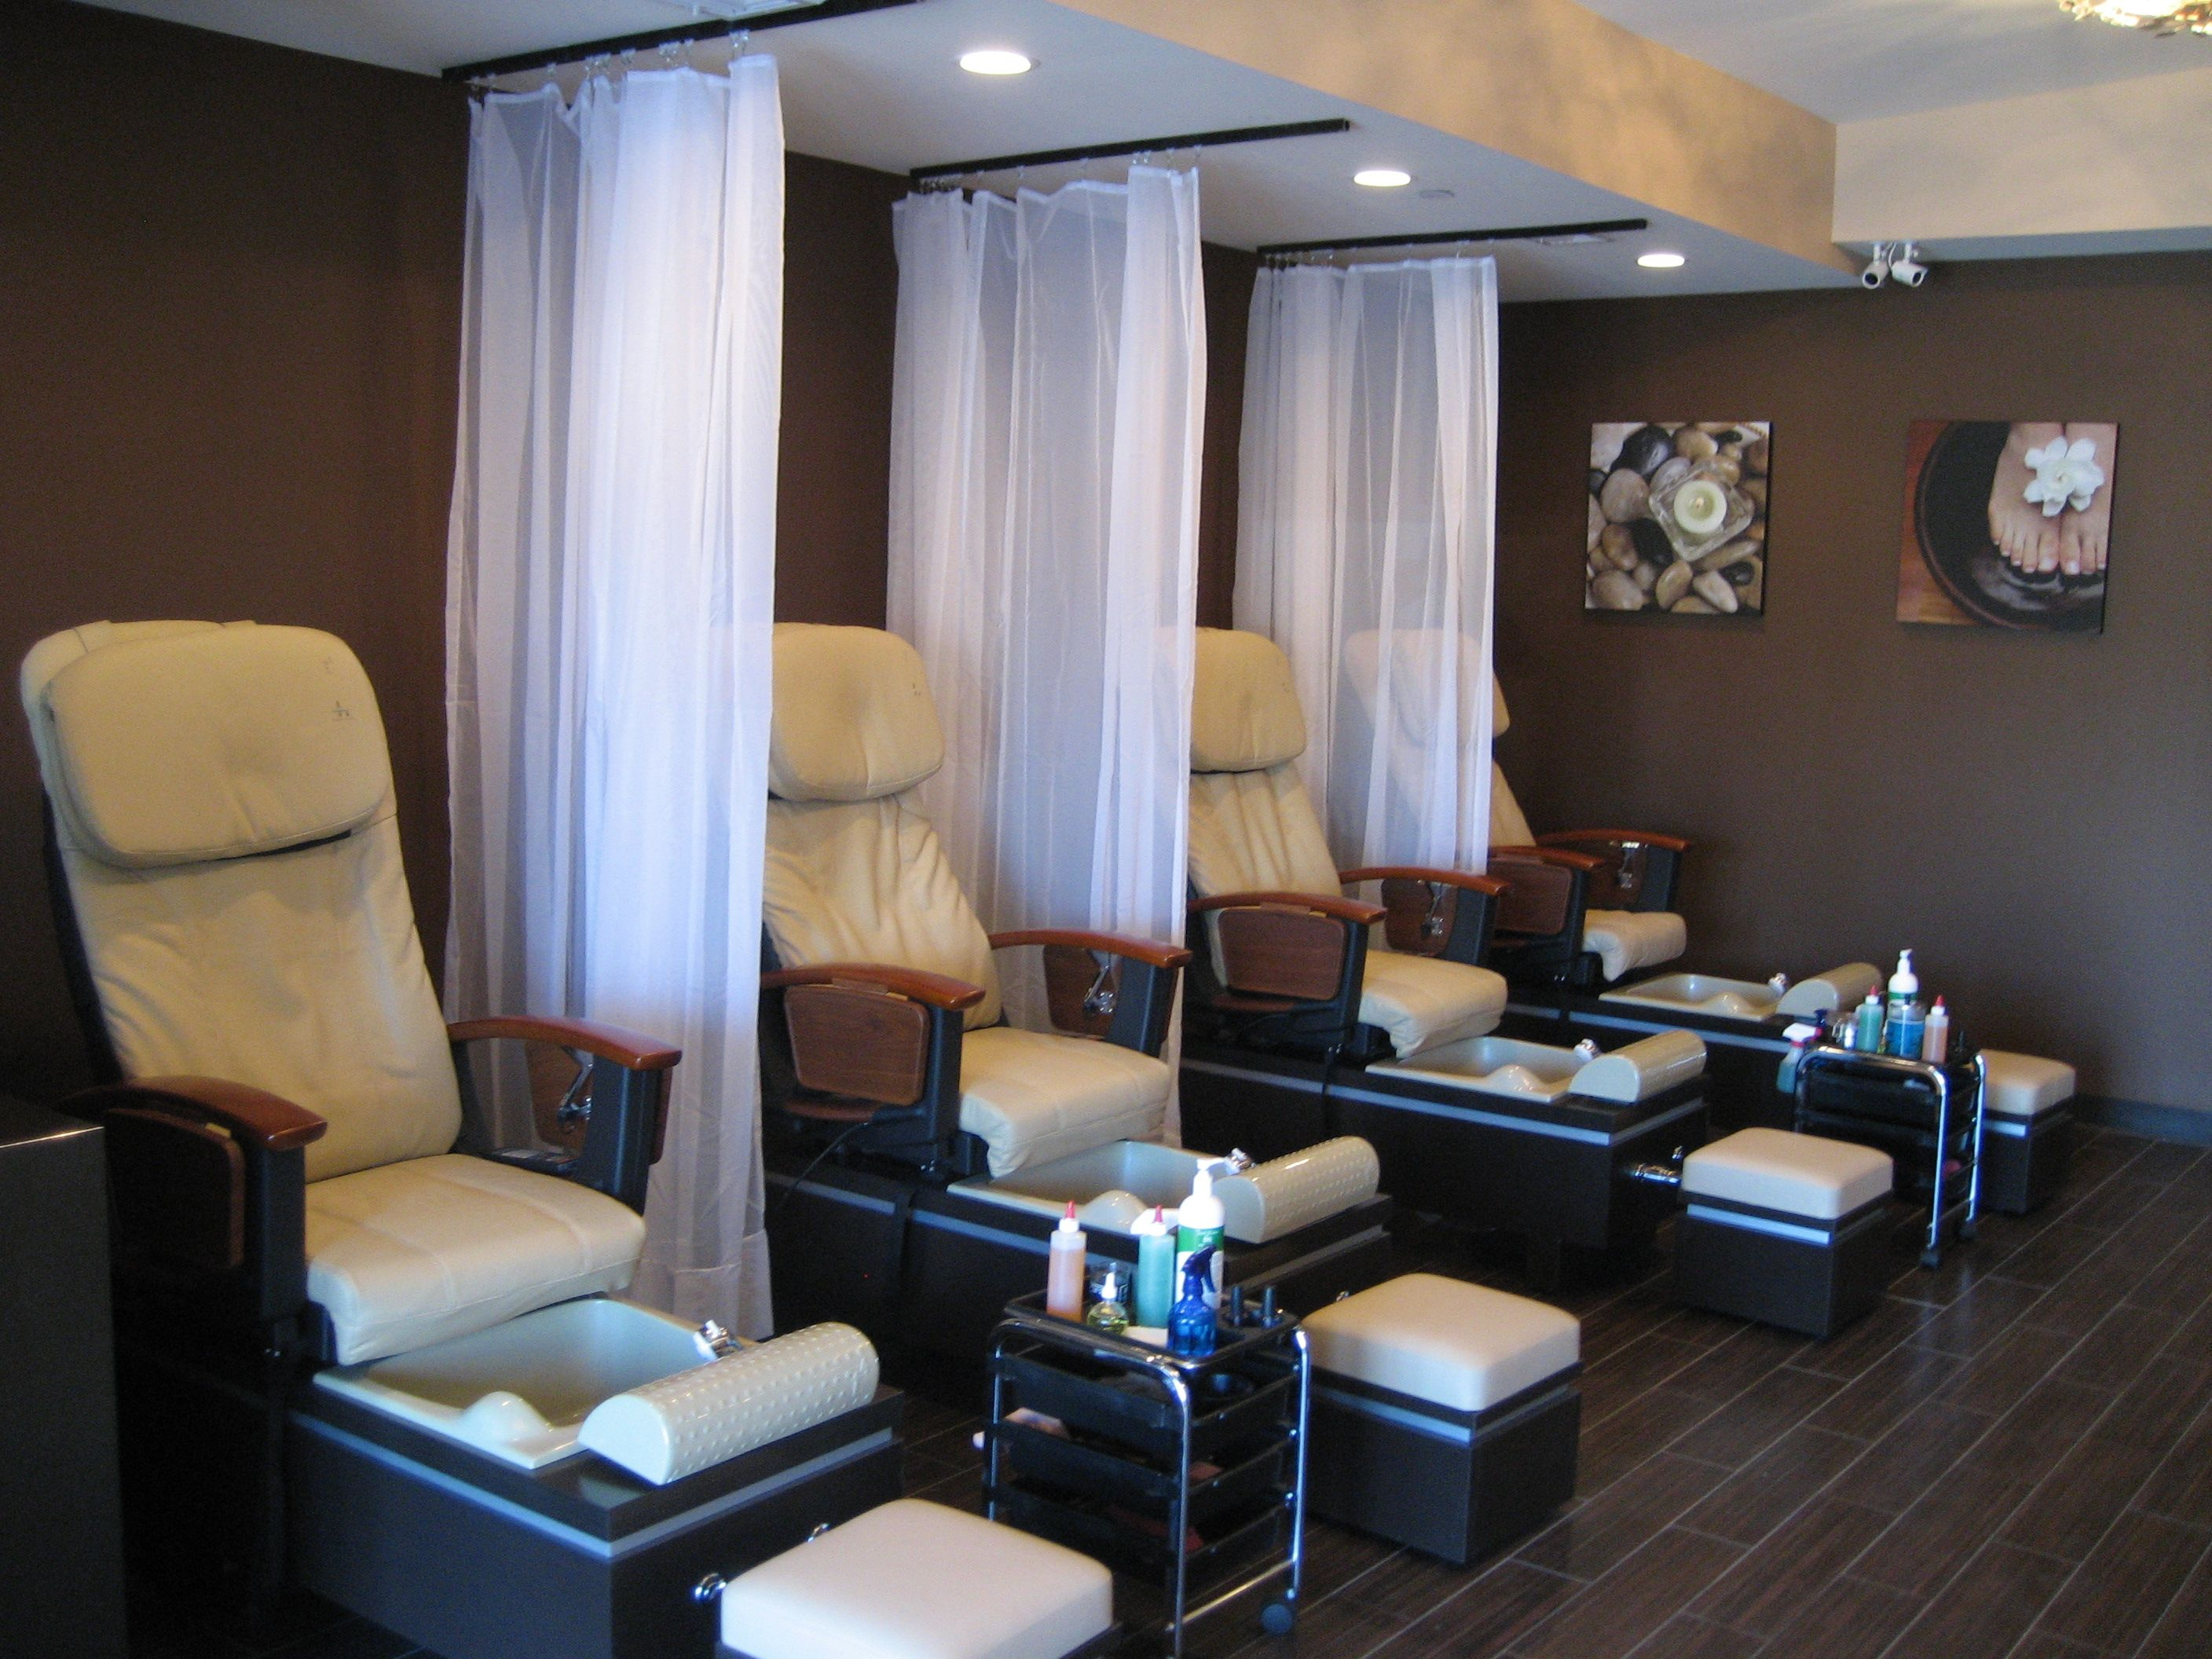 small nail salon interior designs google search - Nail Salon Design Ideas Pictures